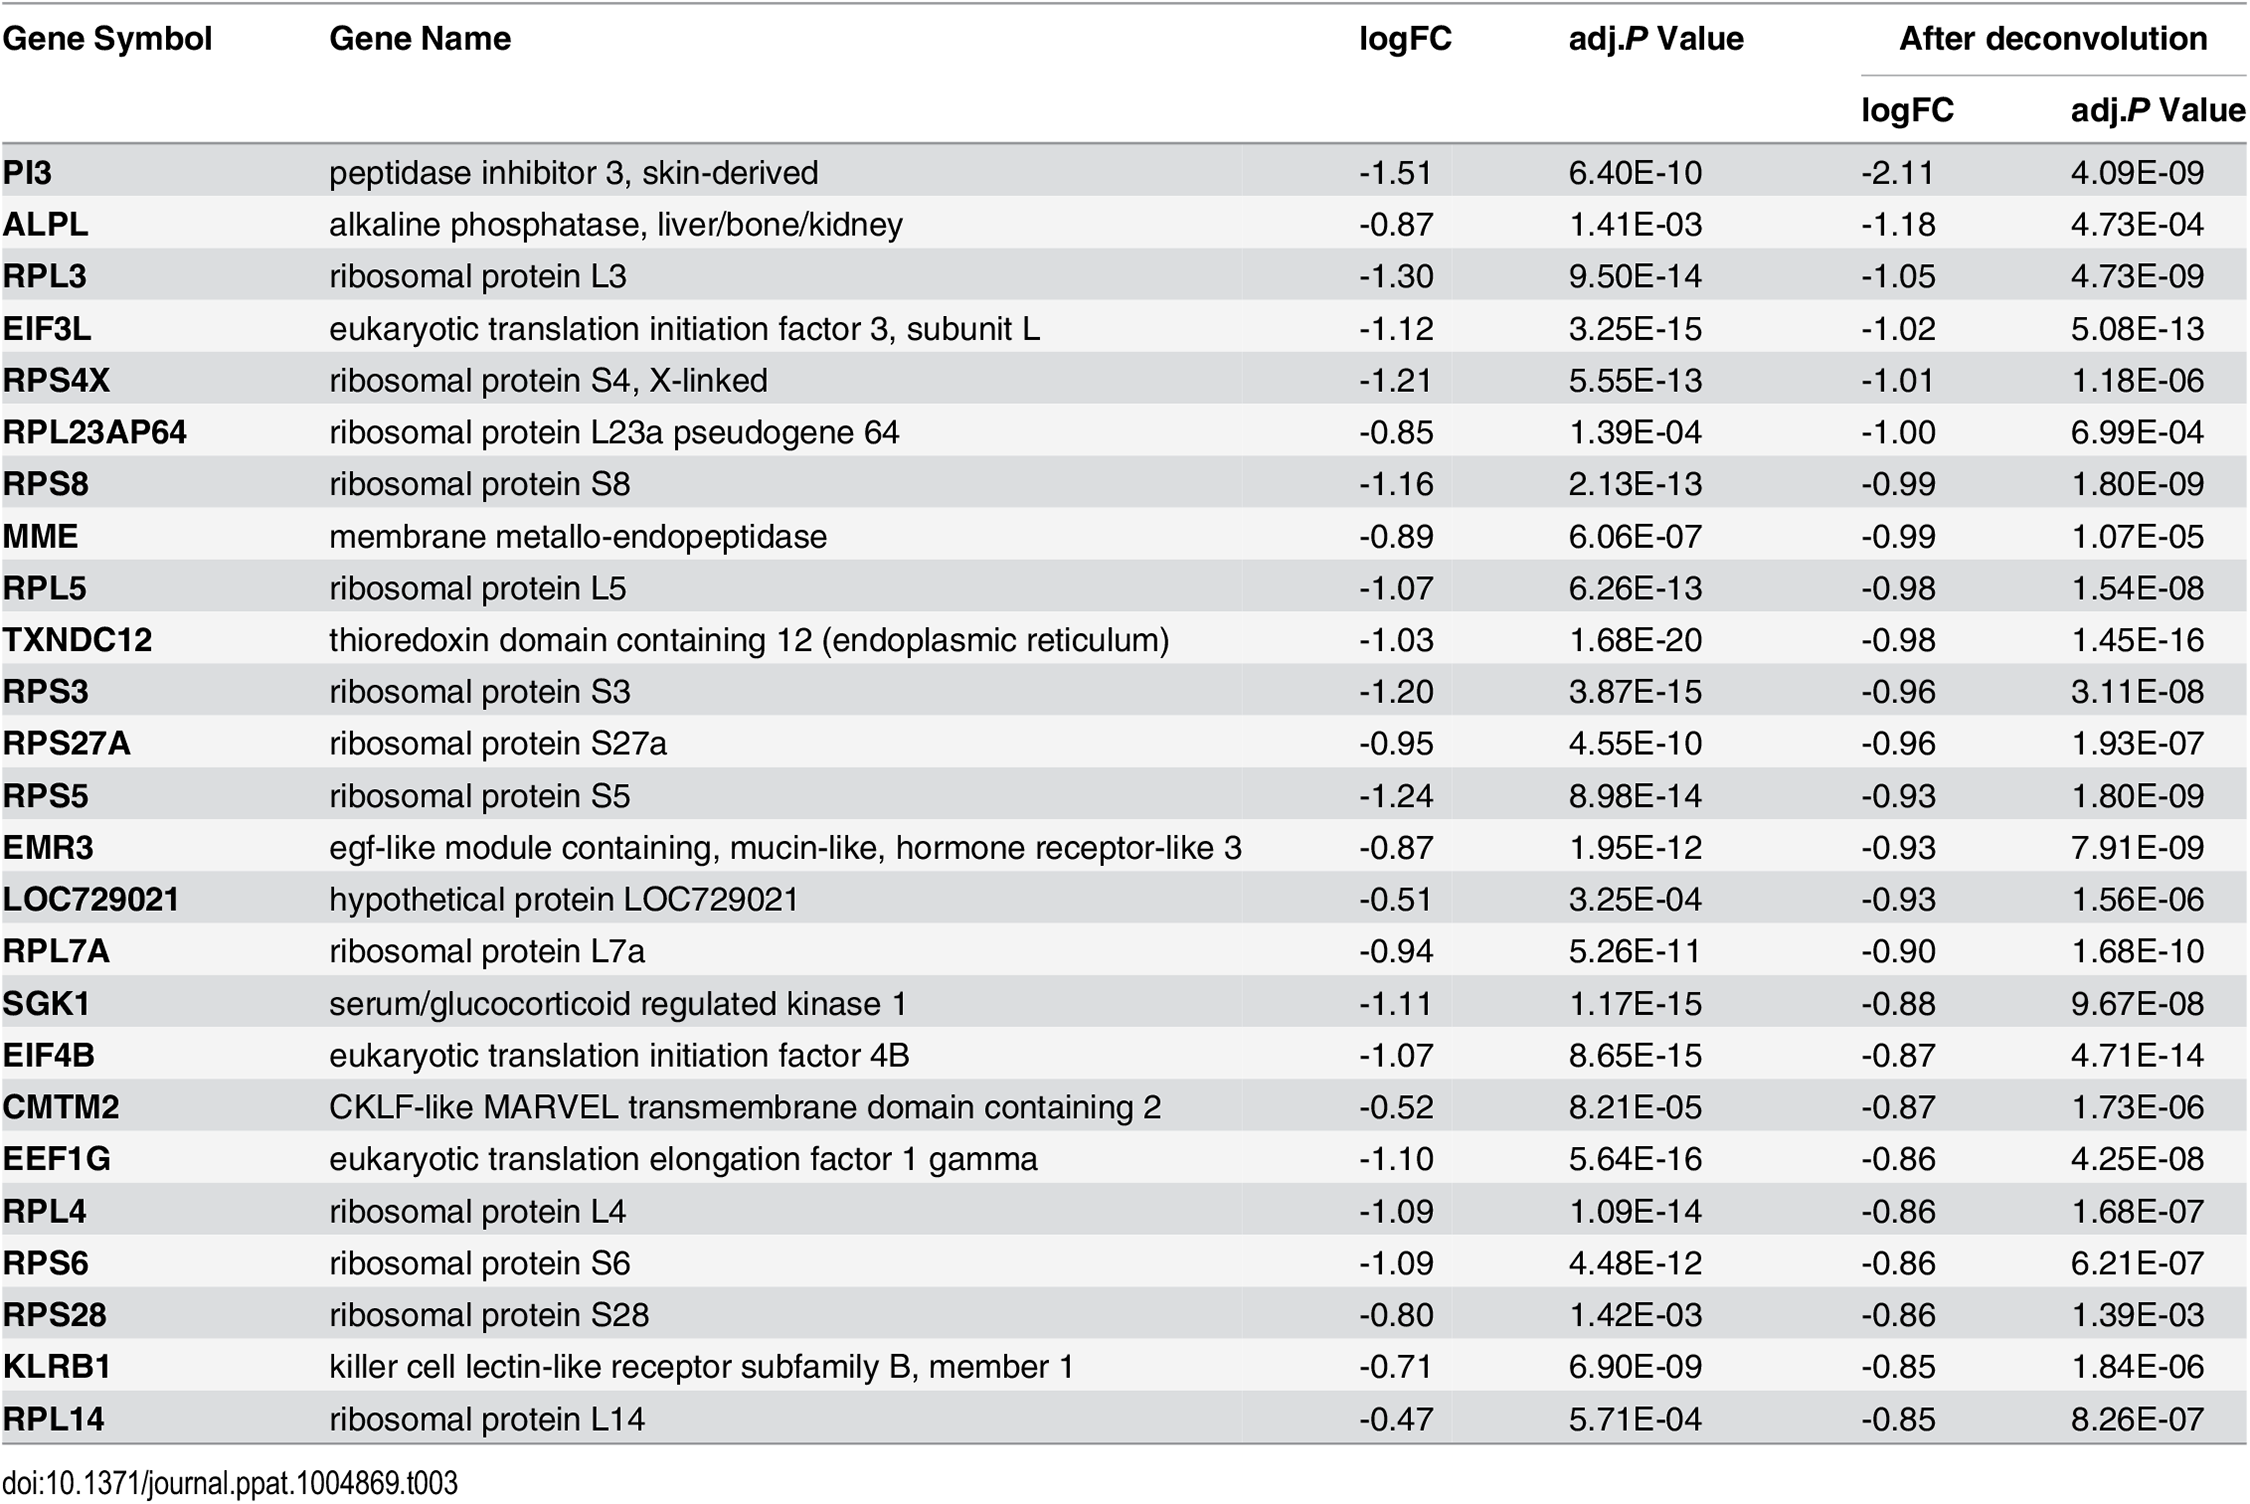 Top downregulated genes in the acute phase of influenza virus infection.